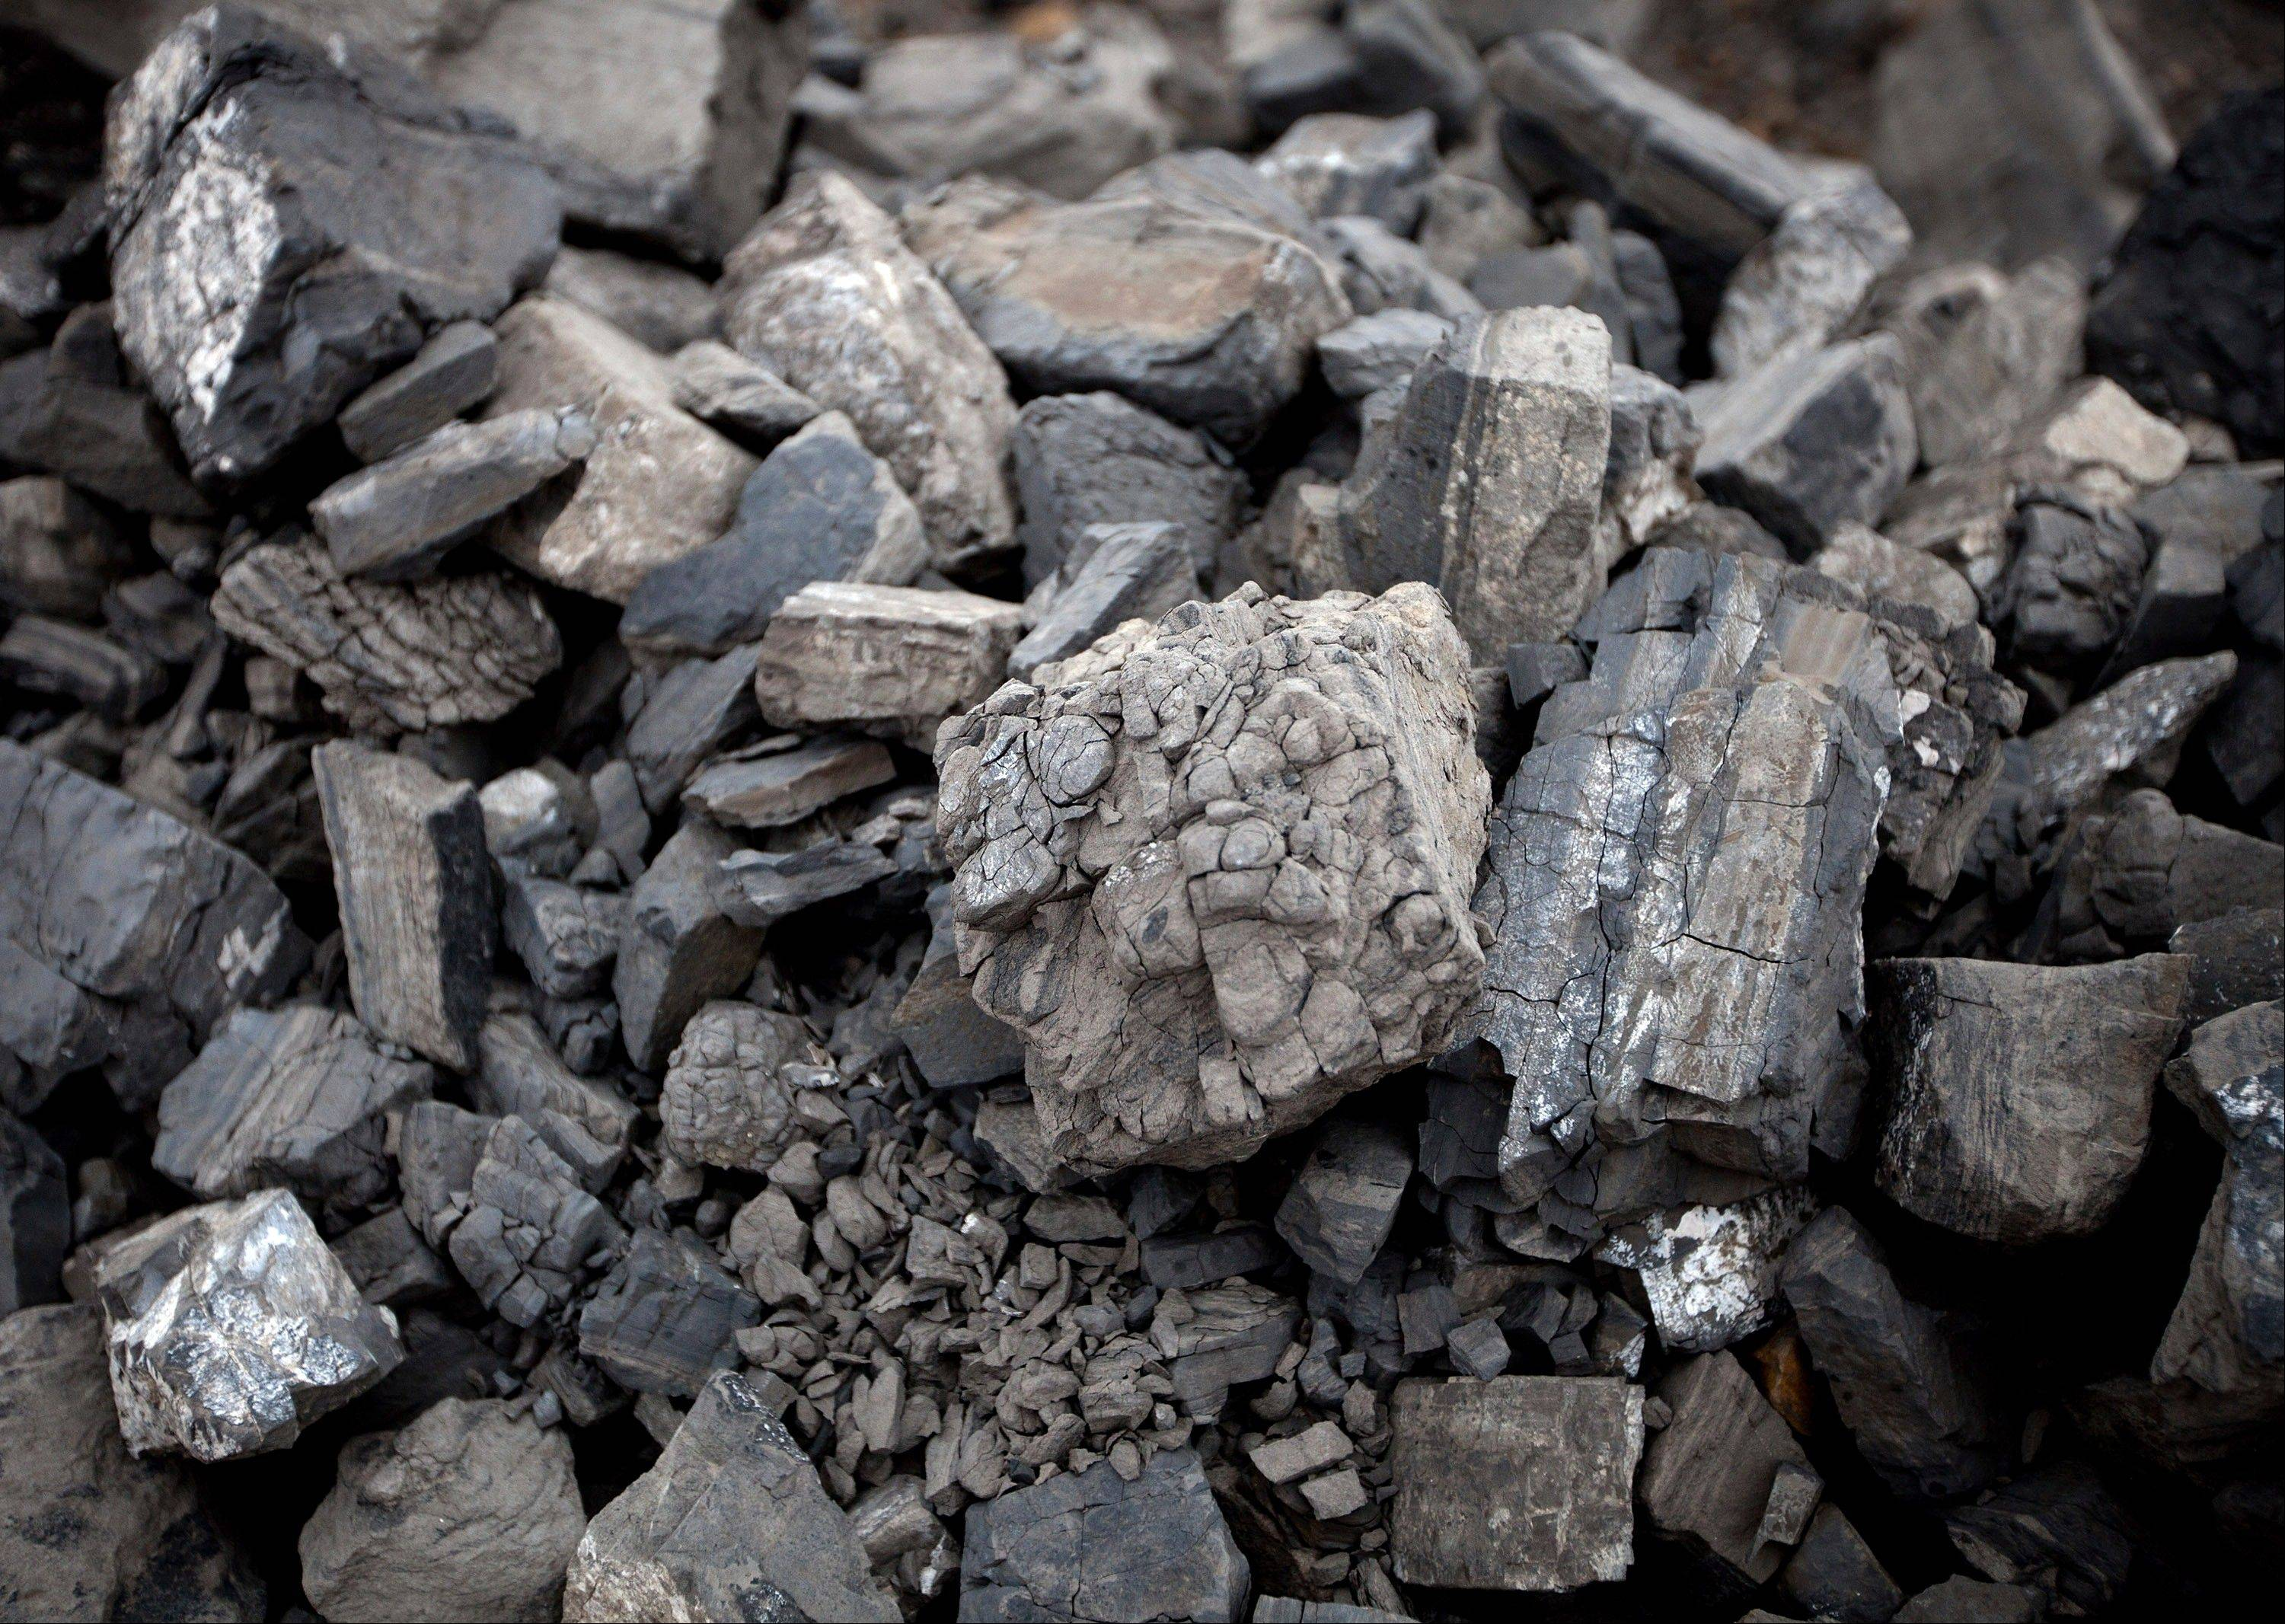 Pieces of coal lay in a pile at the Erdenes Tavan Tolgoi, a coal mining company in Tavan Tolgoi, southern Mongolia.